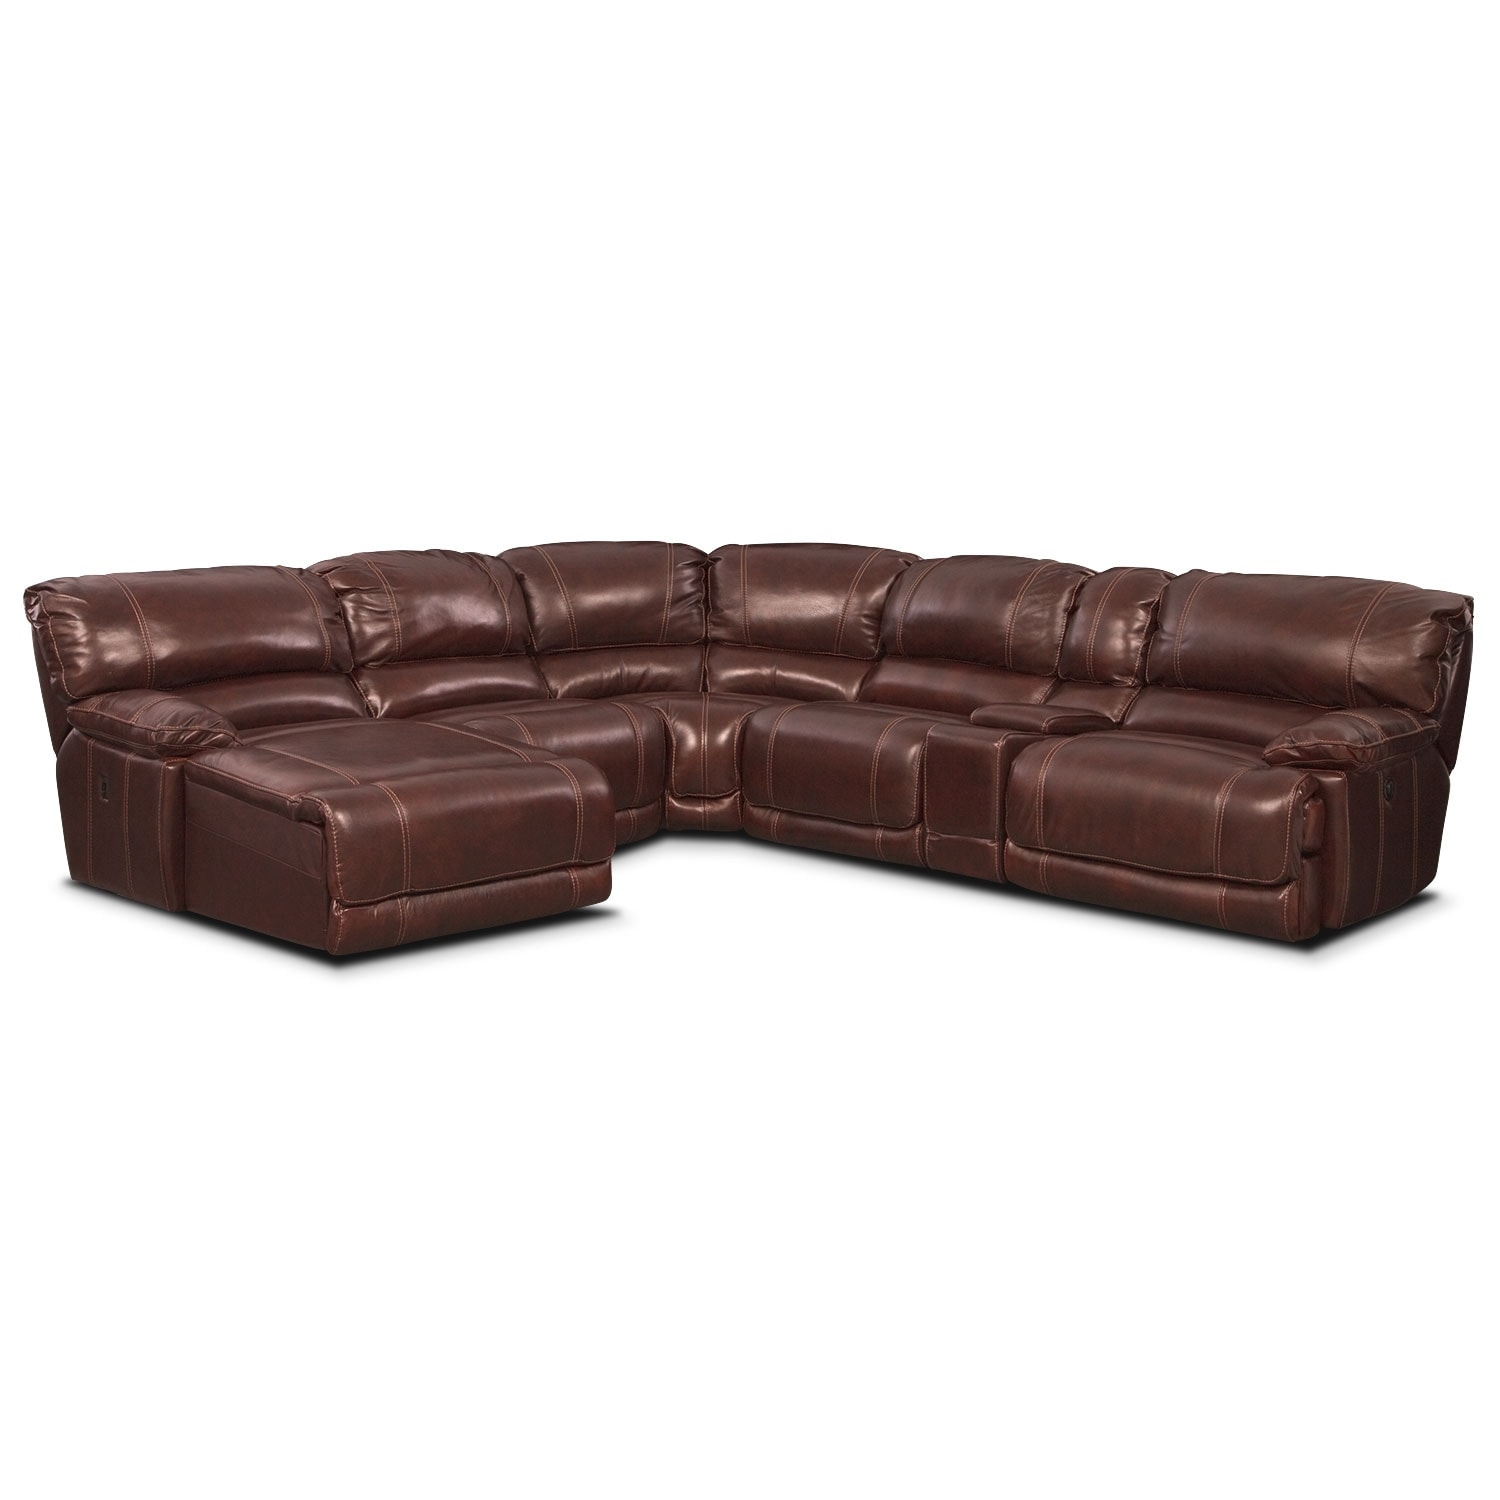 St malo 6 piece power reclining sectional with left for Power reclining sectional sofa with chaise